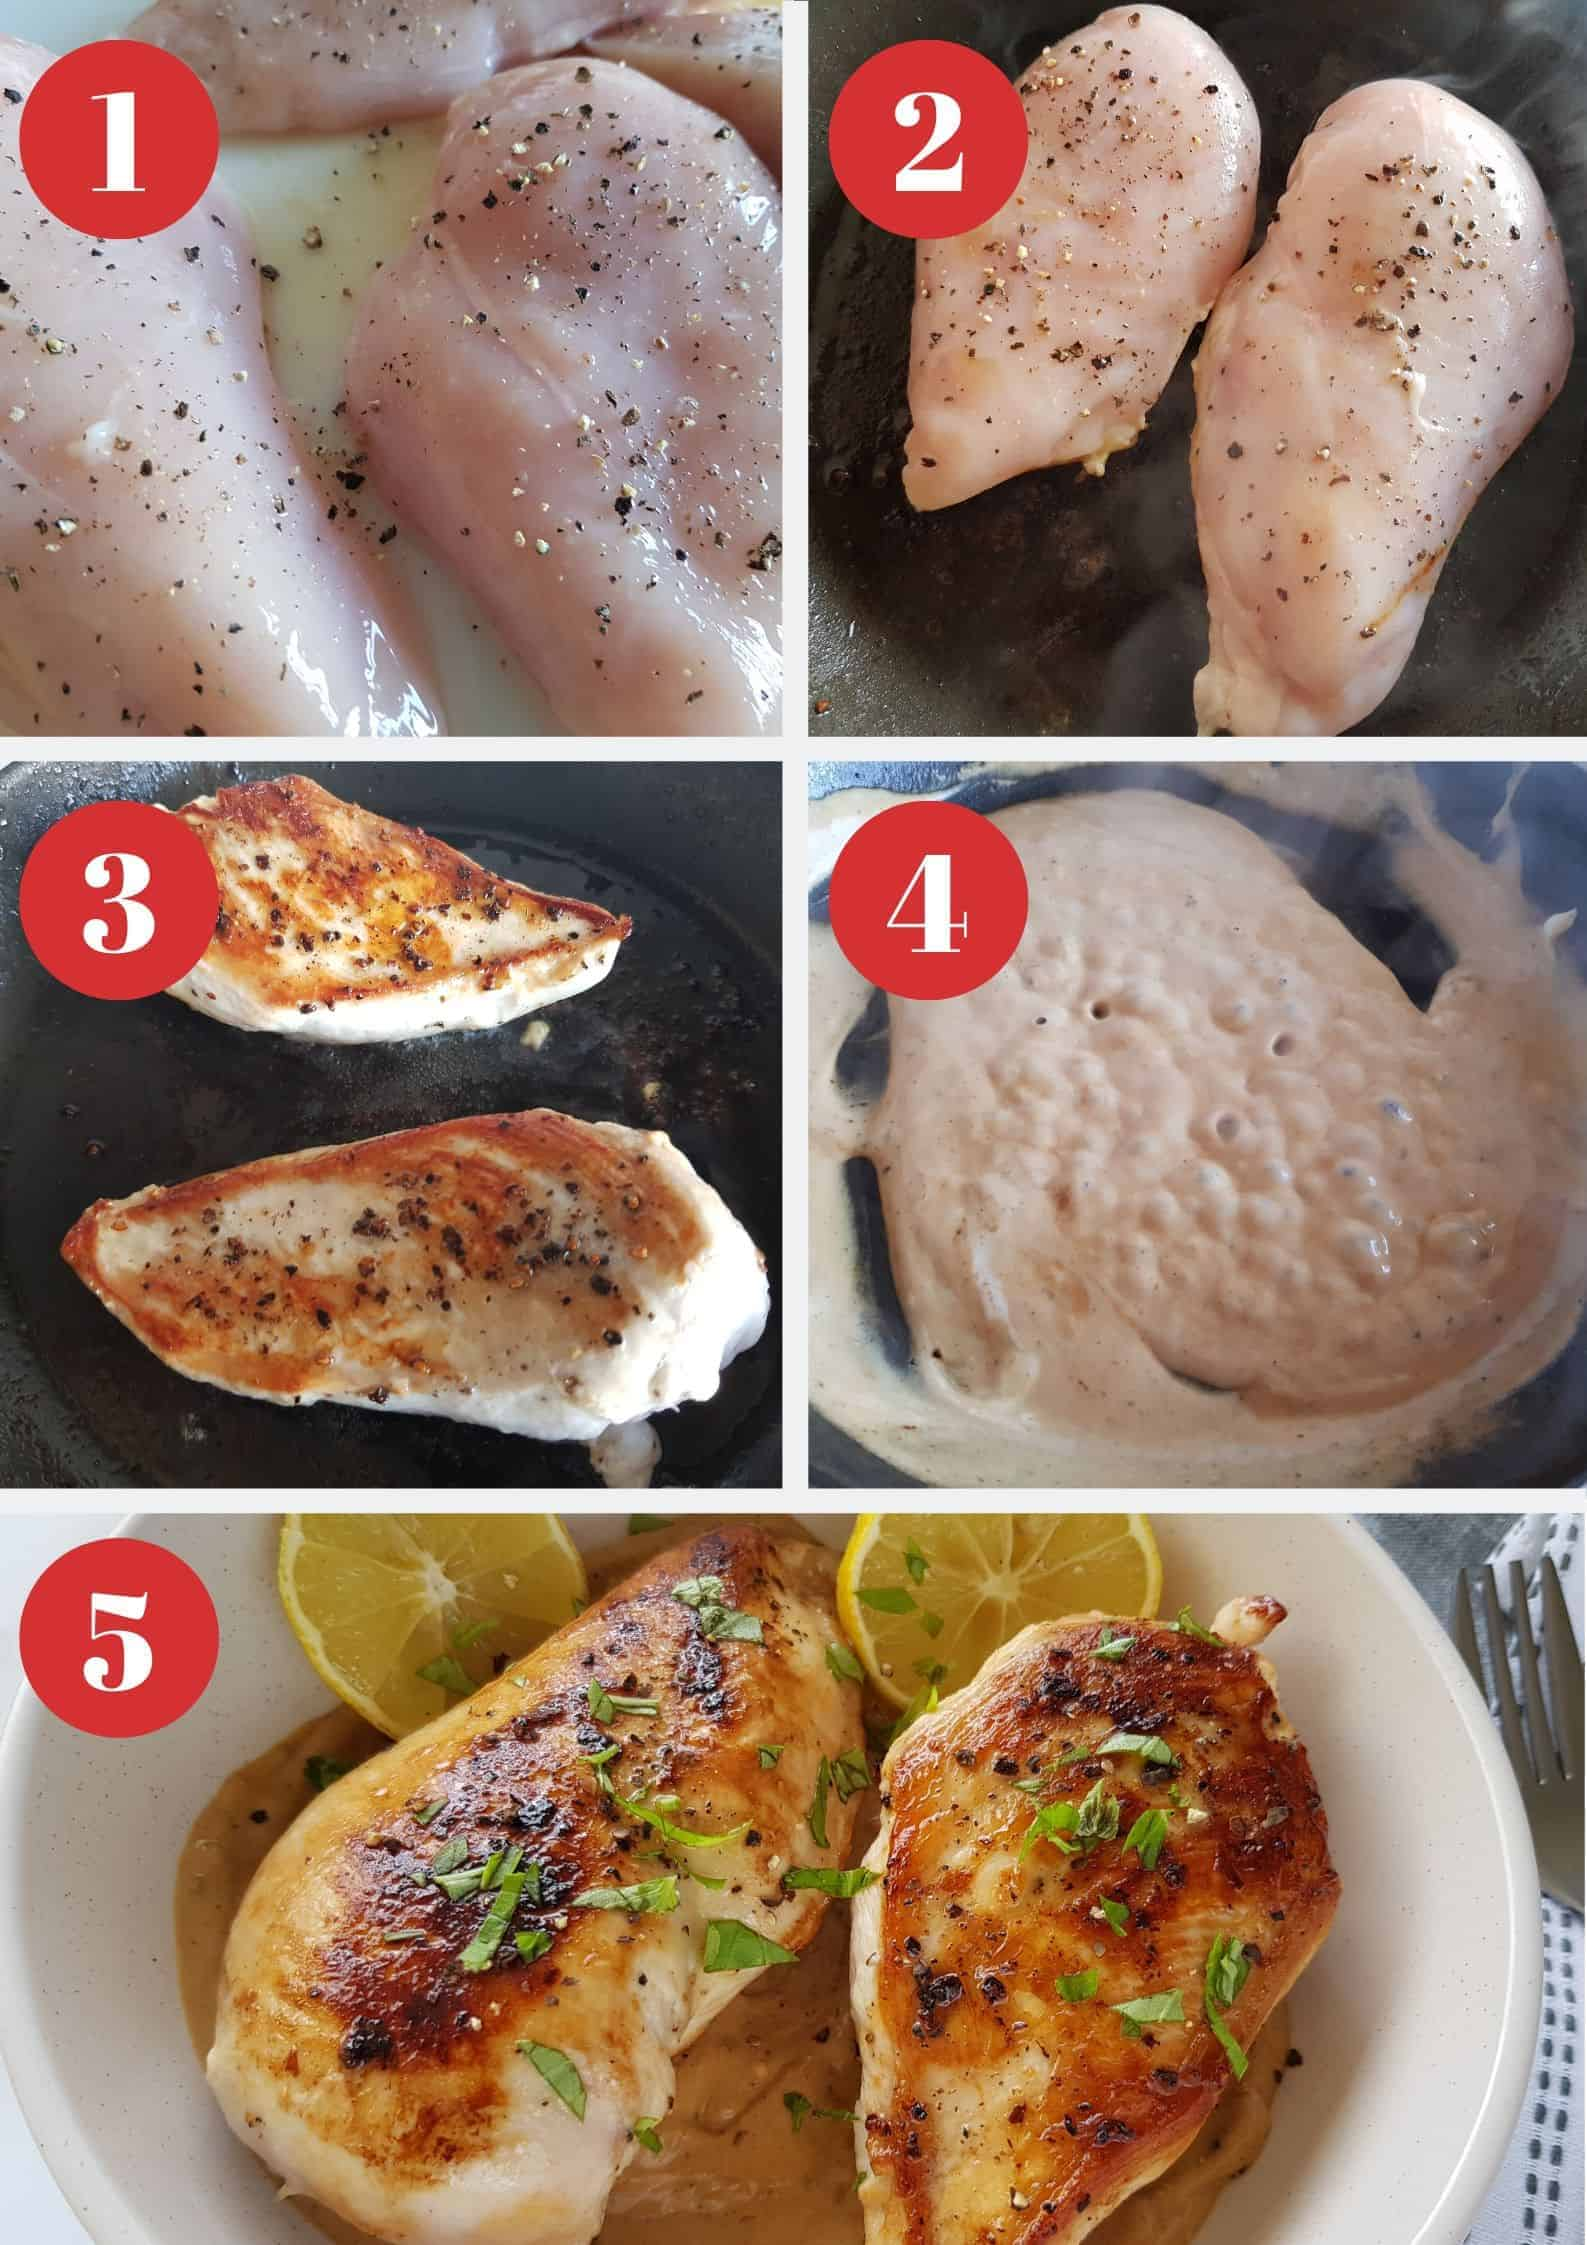 Infographic showing How to make lemon pepper chicken breast.